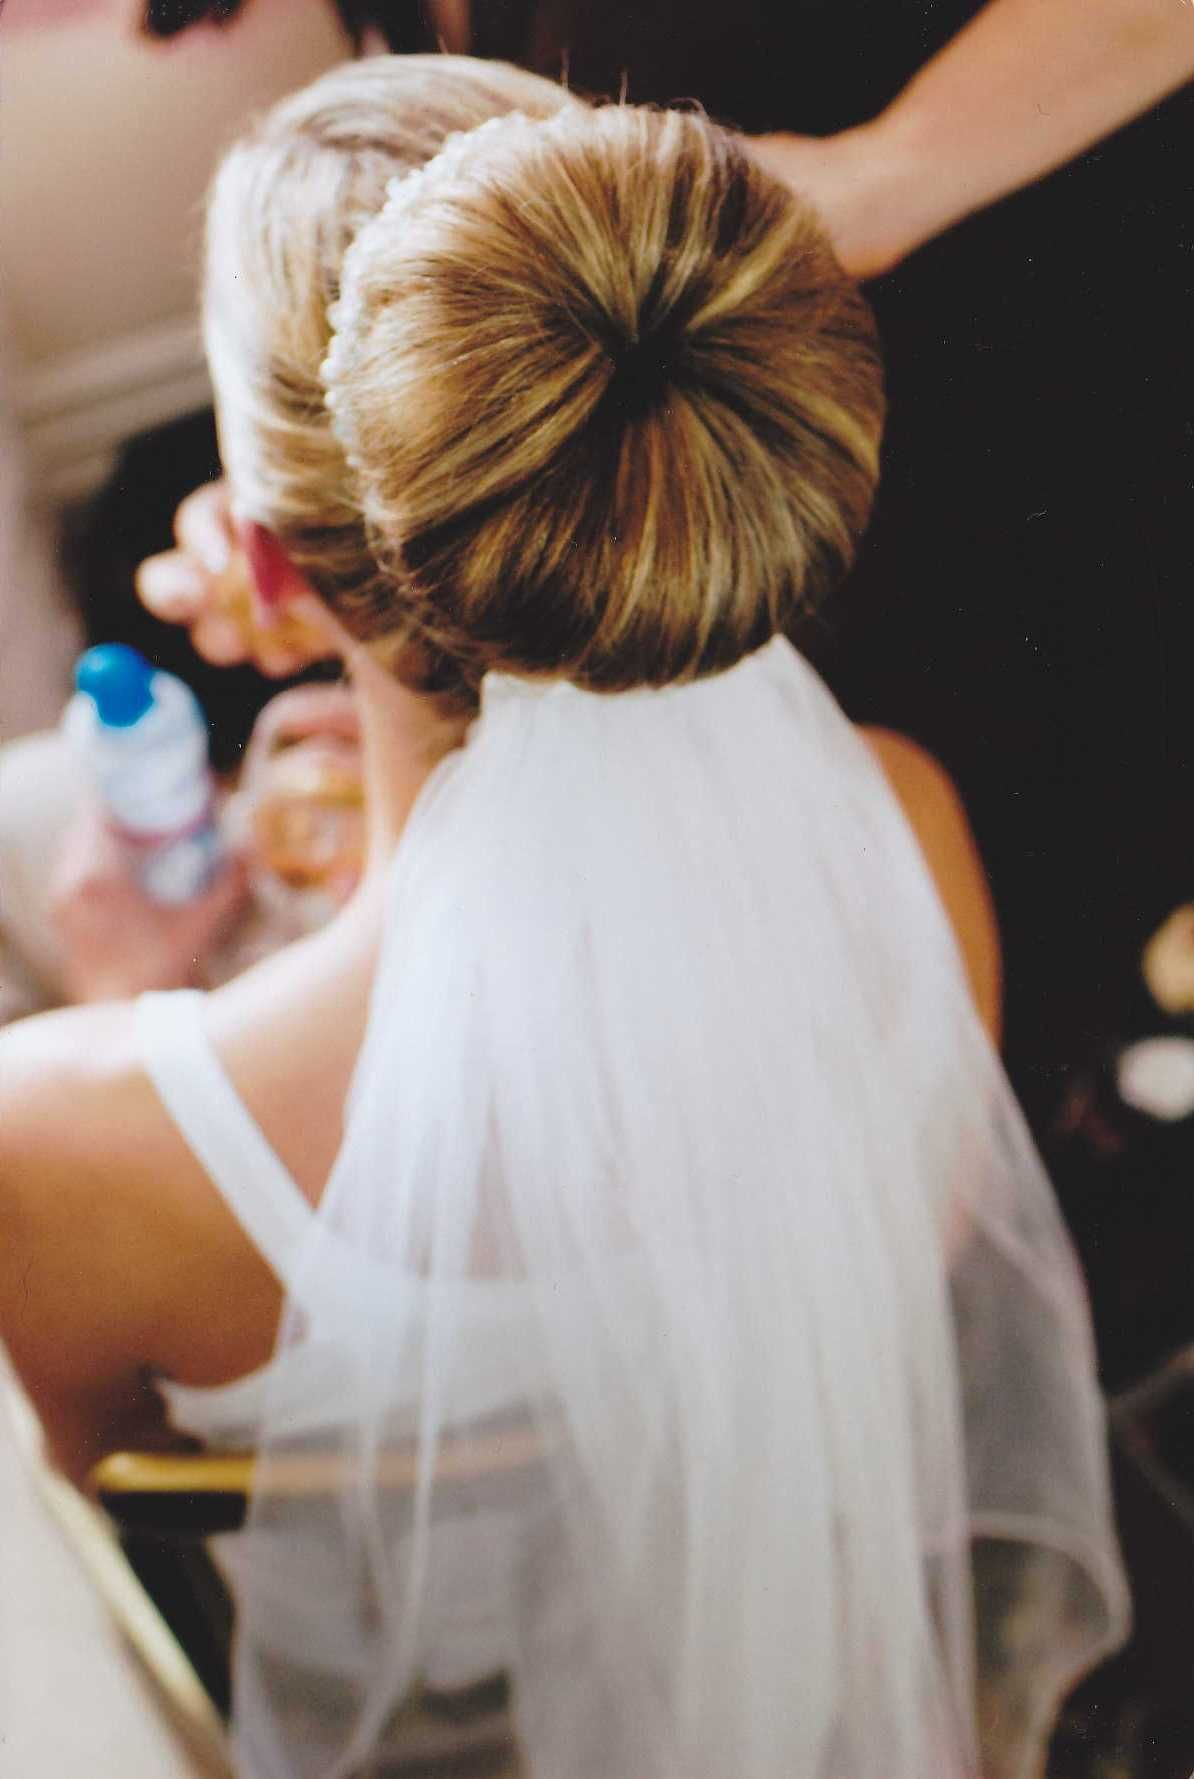 hair up tips - Google Search | wedding and prom accessories ...